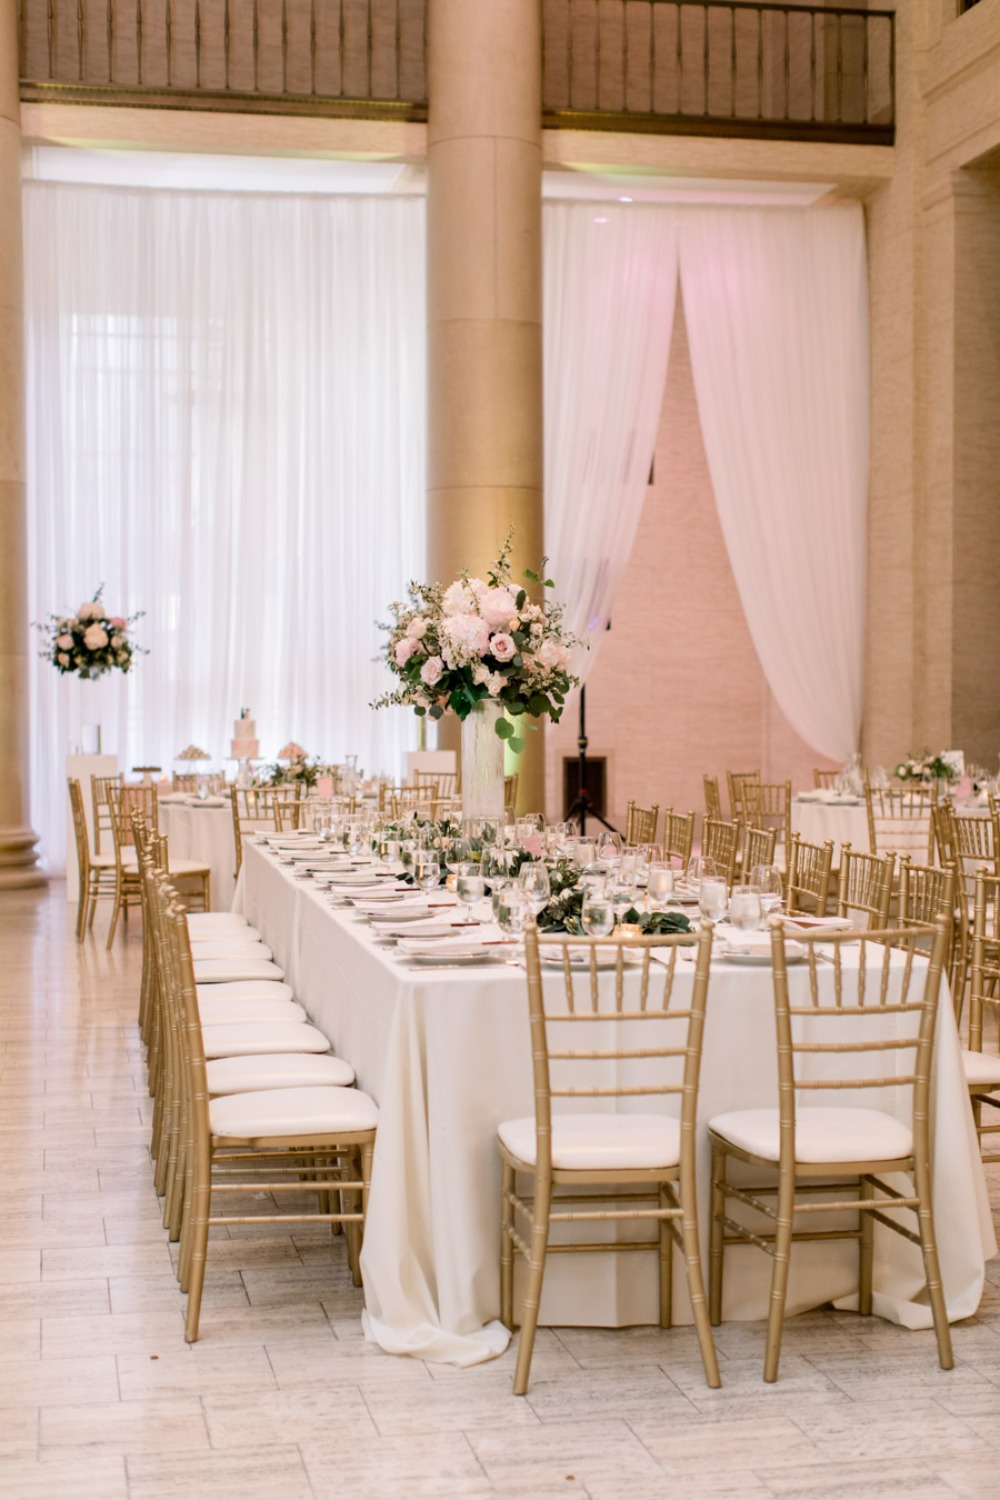 Reception with gold chairs